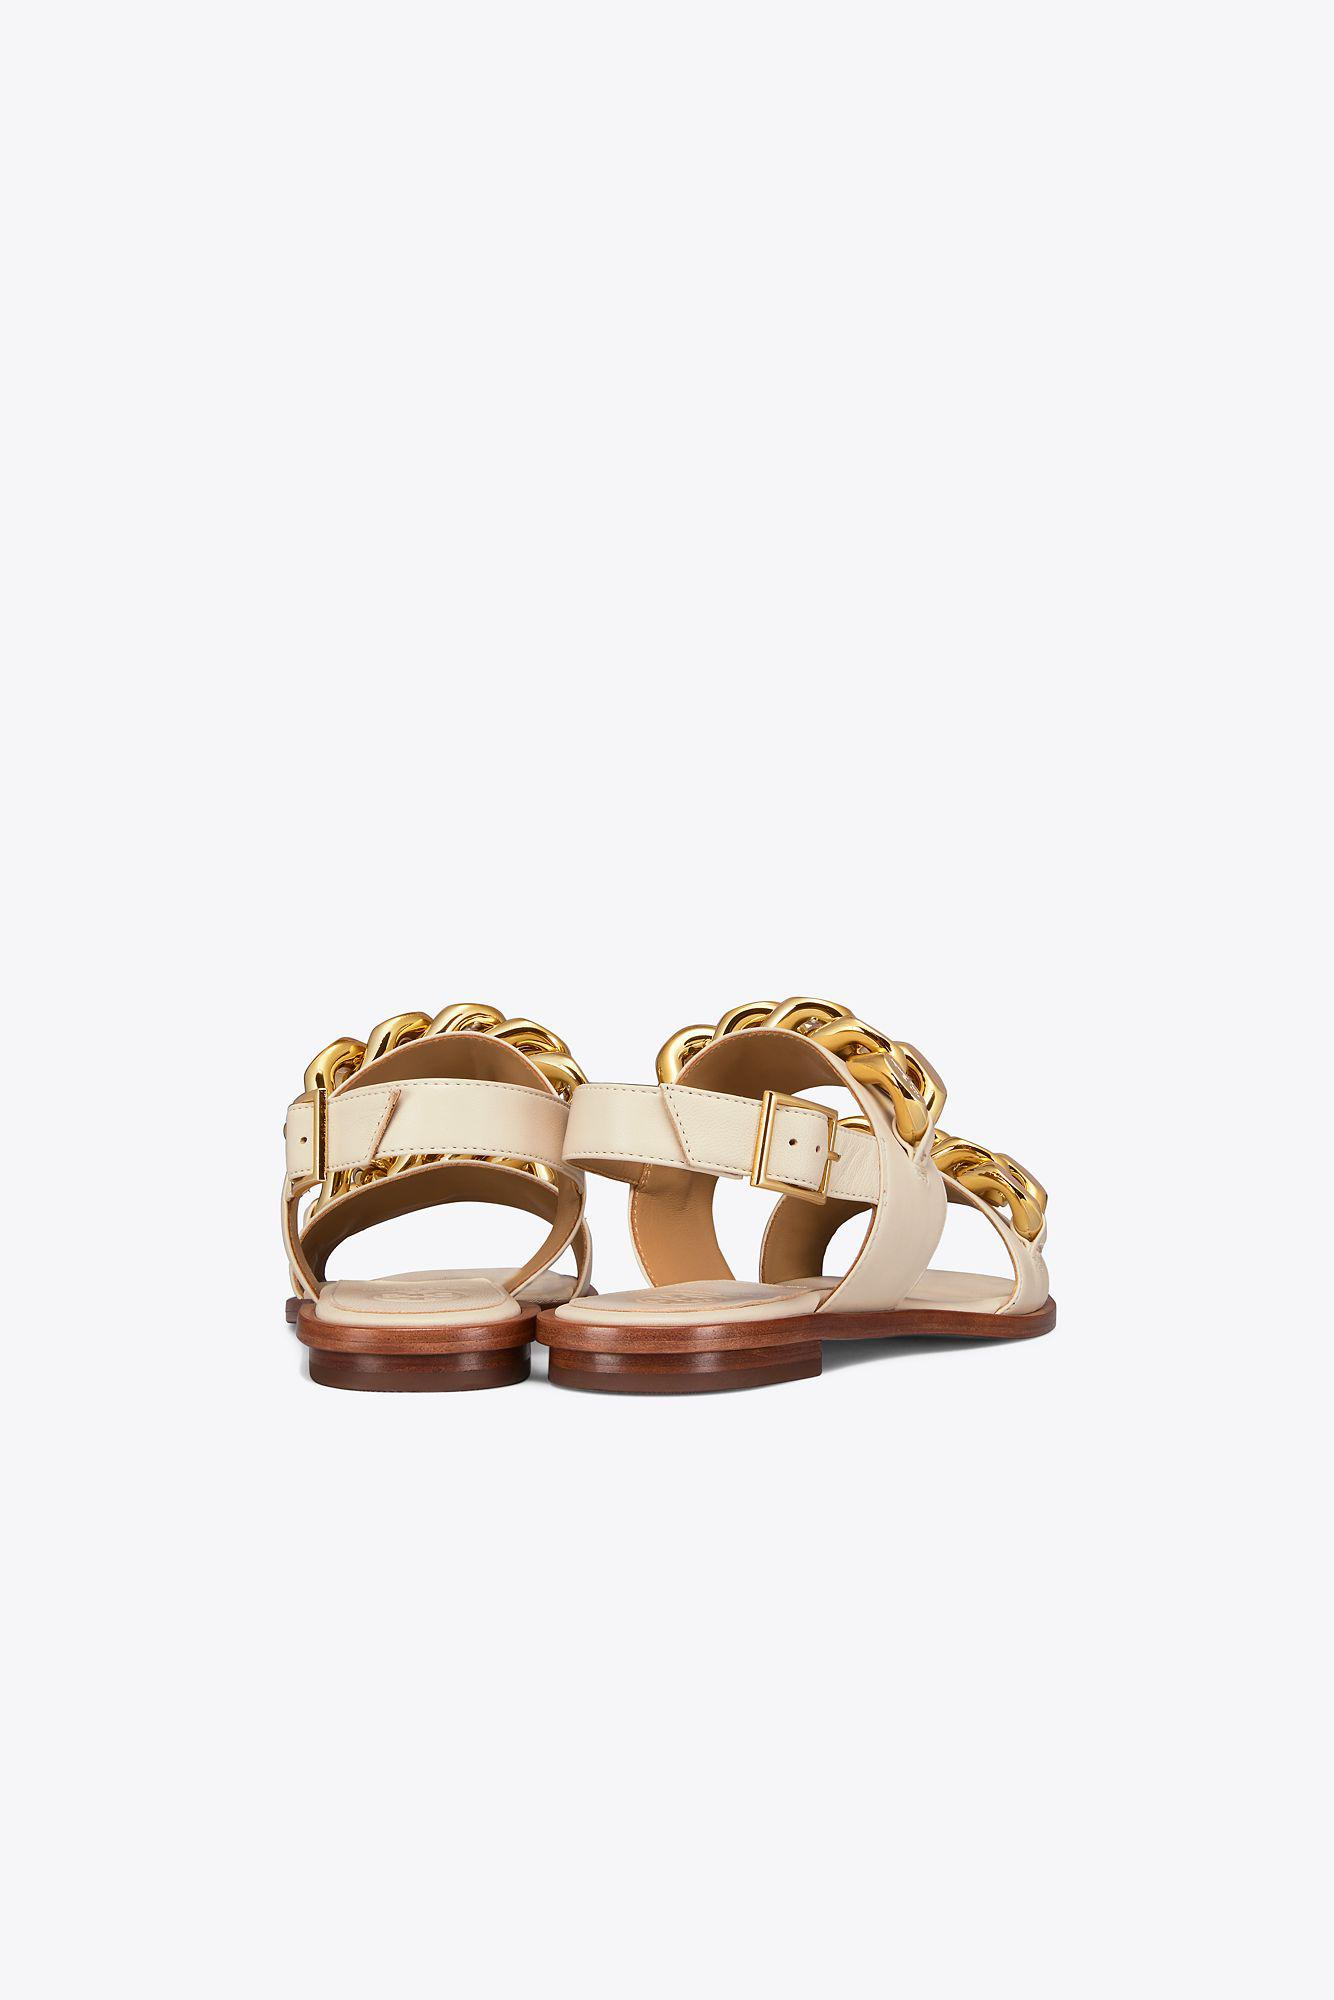 538f9ab6587 Tory Burch - Multicolor Adrien Sandal - Lyst. View fullscreen